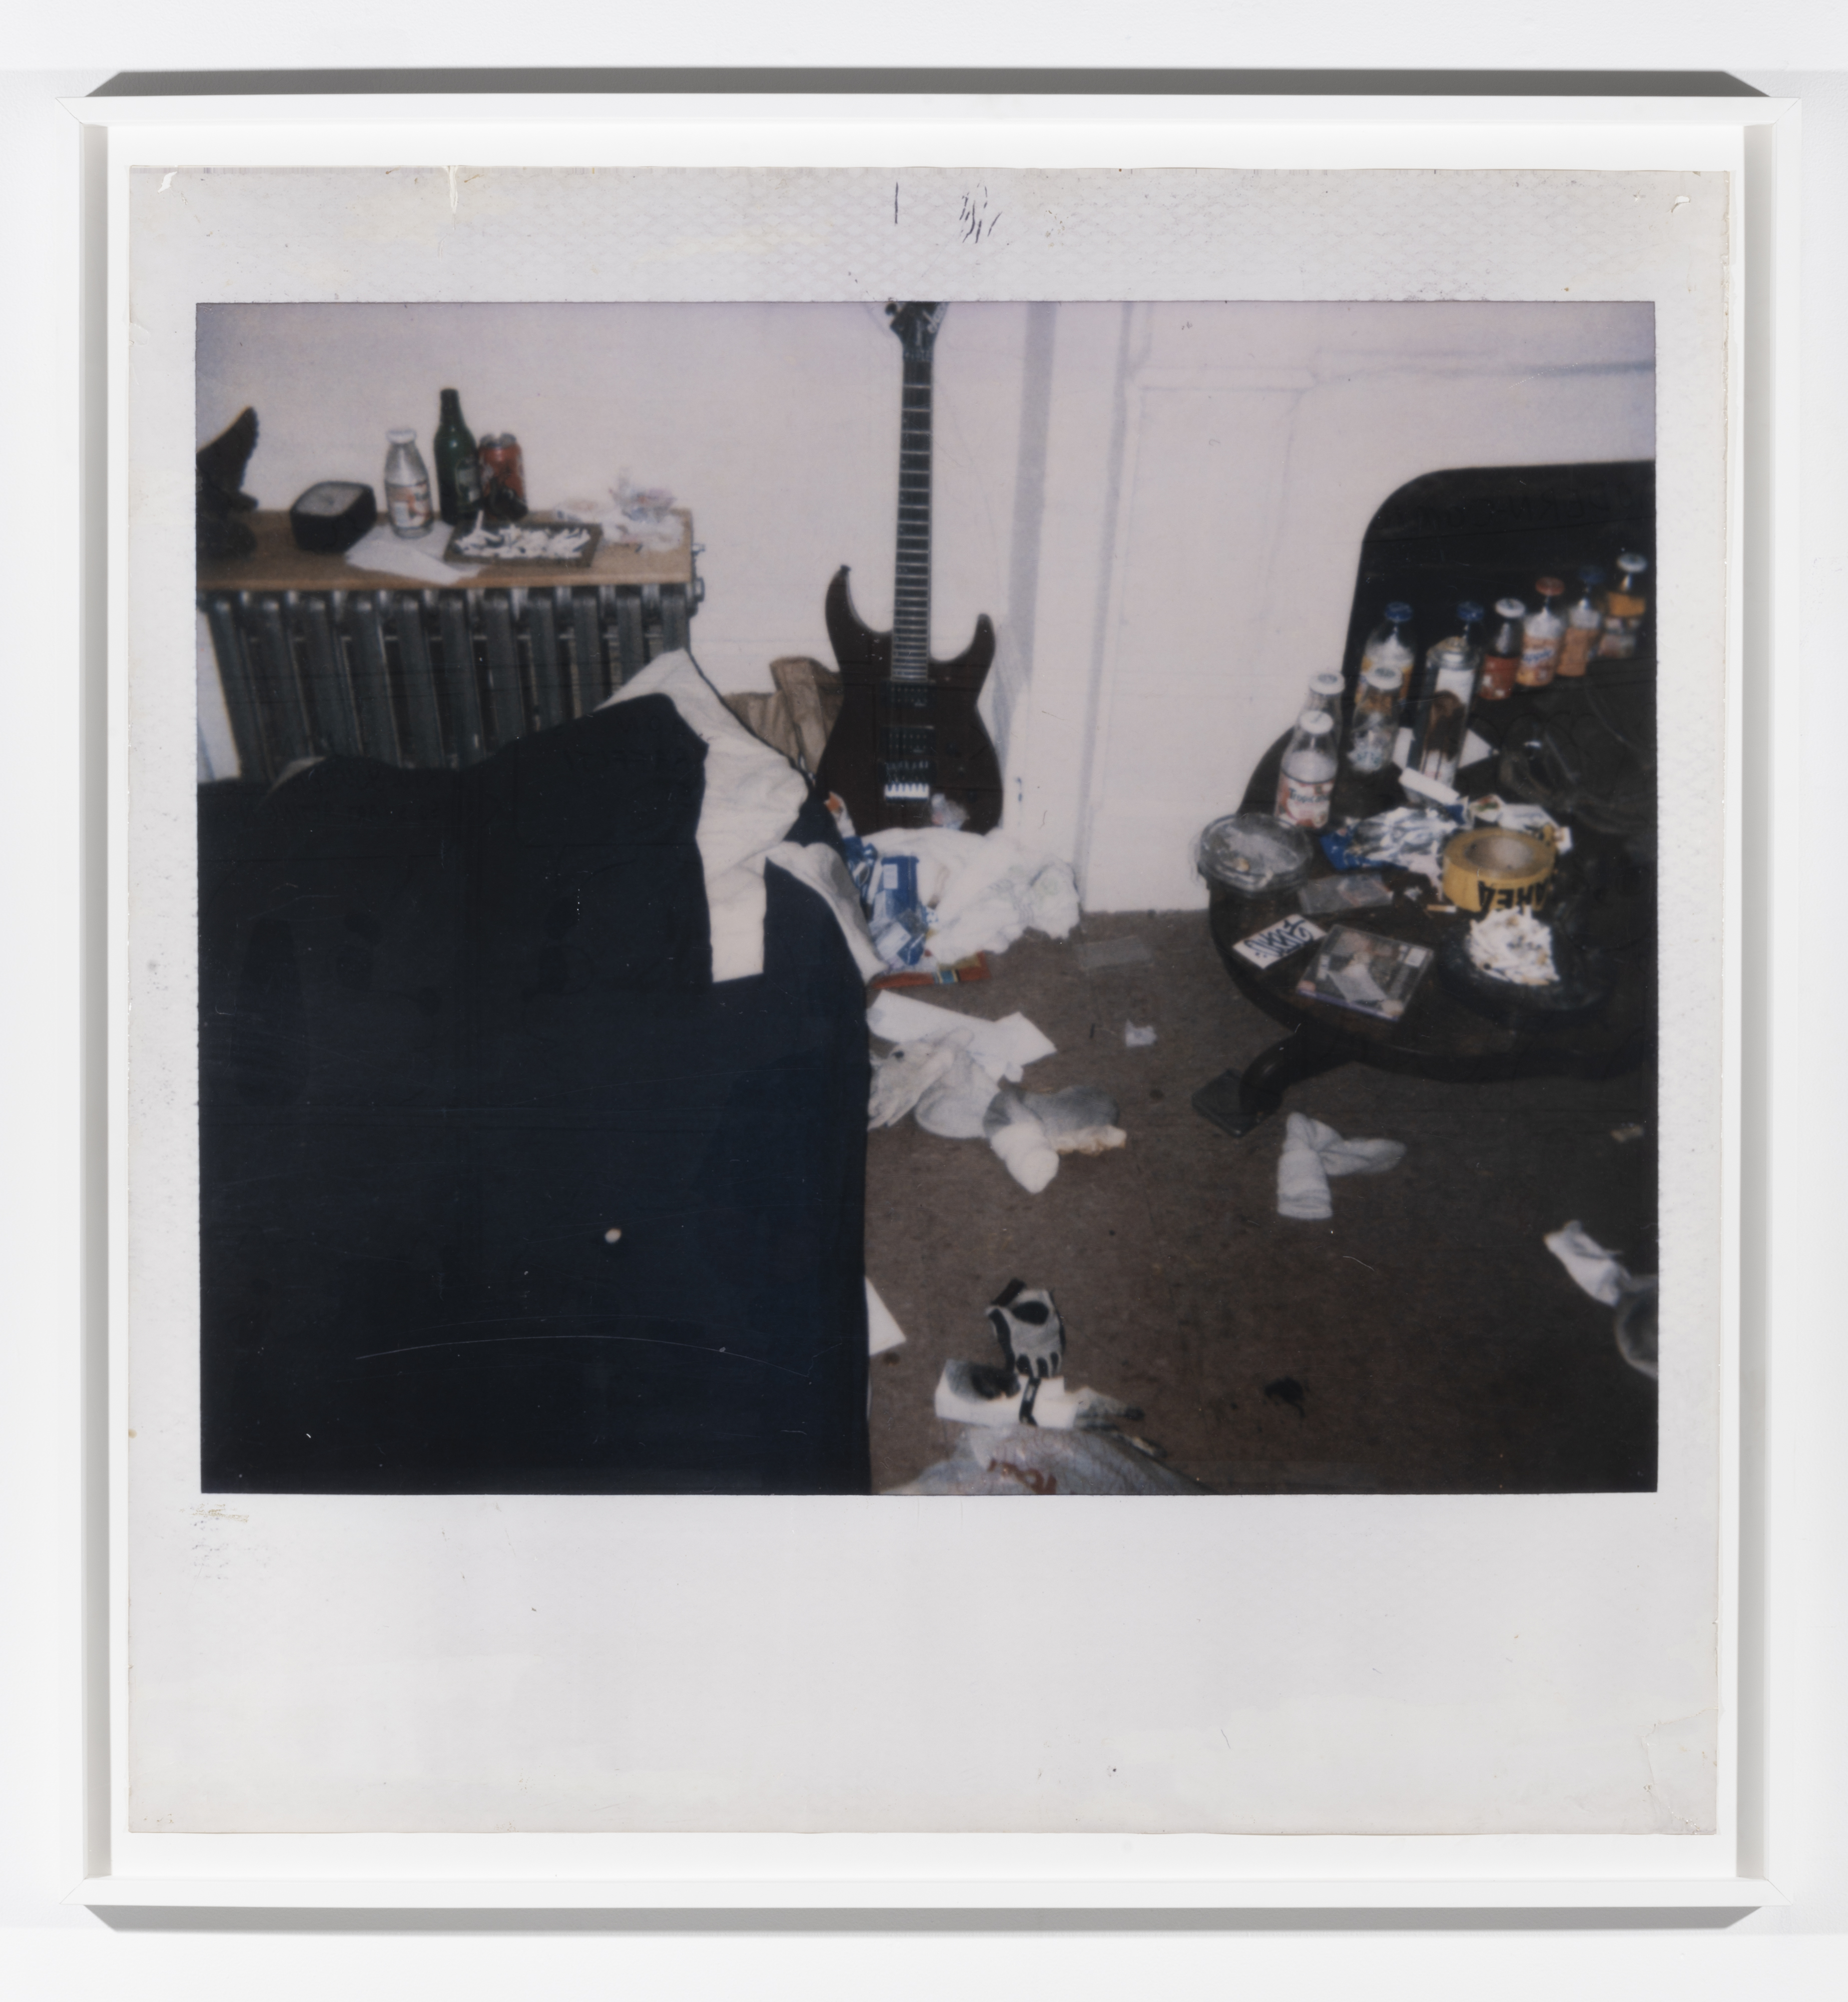 Dash-Snow-Untitled-Polaroid-2004